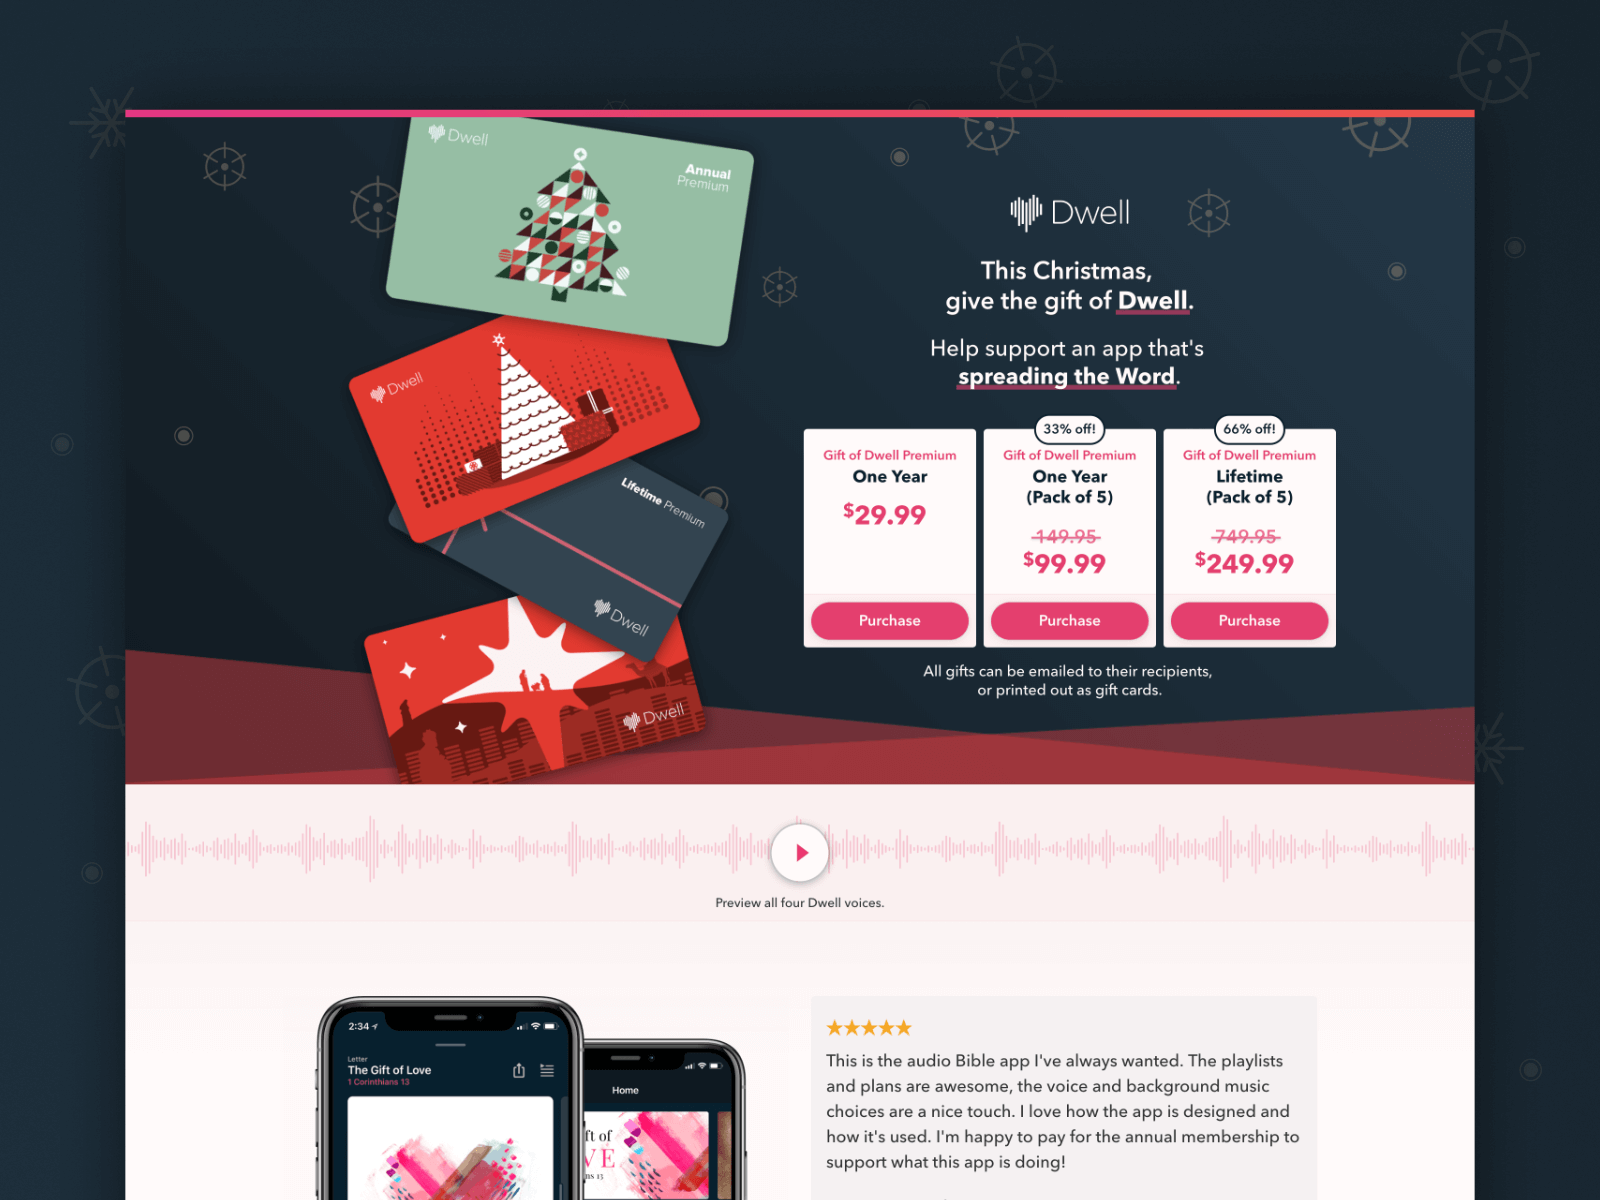 Landing page for the Dwell Christmas promotion